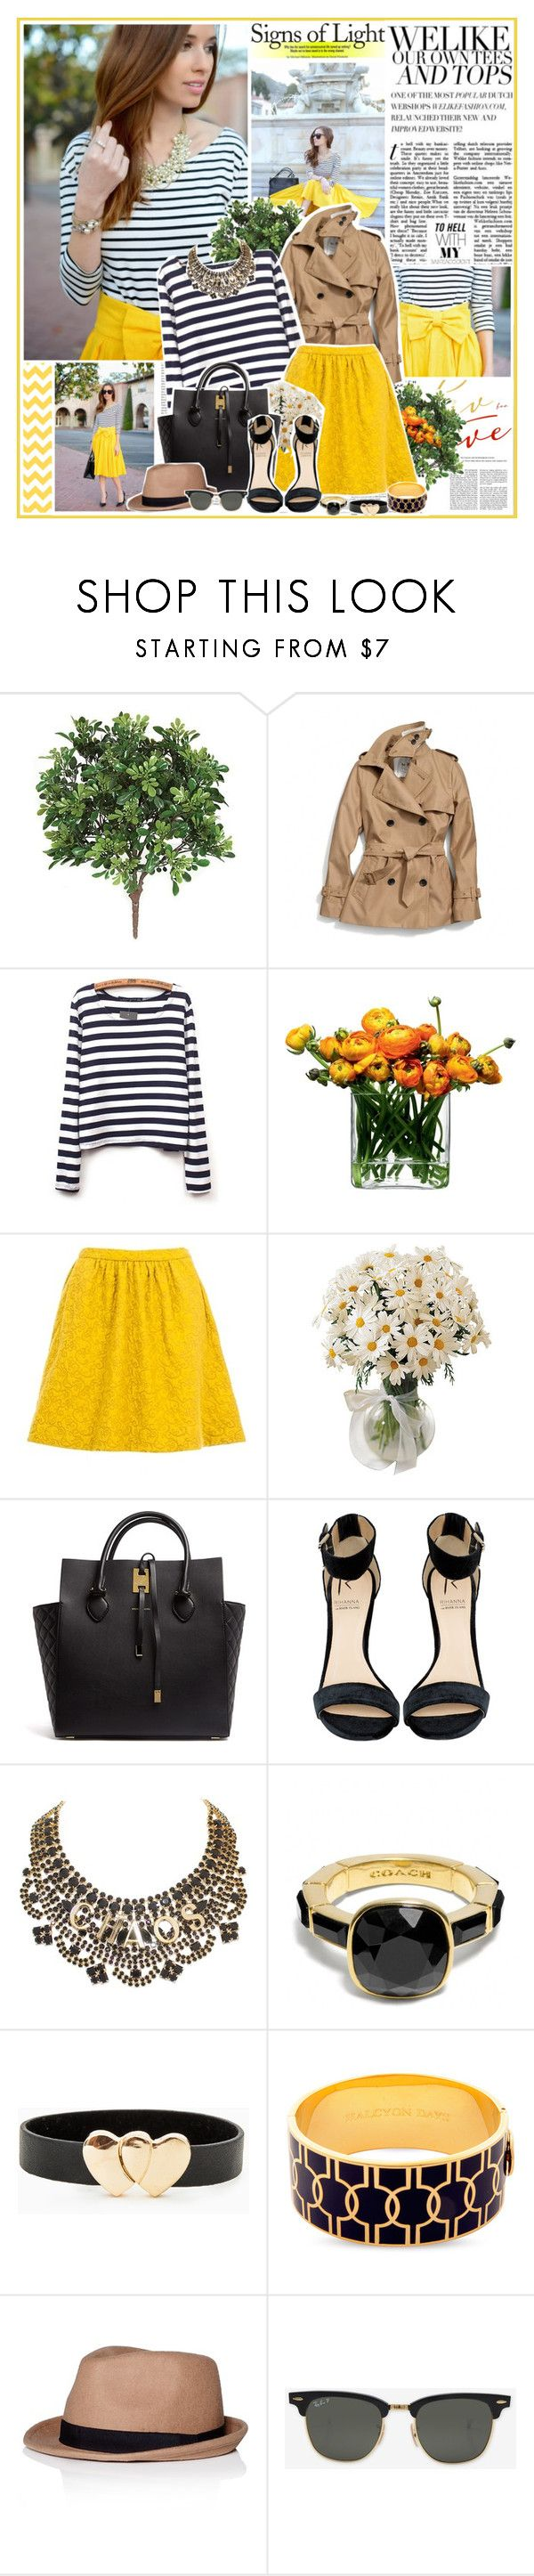 """[811] - Mara Ferreira Fashion Indie"" by juuh ❤ liked on Polyvore featuring Nicki Minaj, Louis Vuitton, Coach, LSA International, Michael Kors, Rihanna For River Island, Tom Binns, Halcyon Days and Ray-Ban"